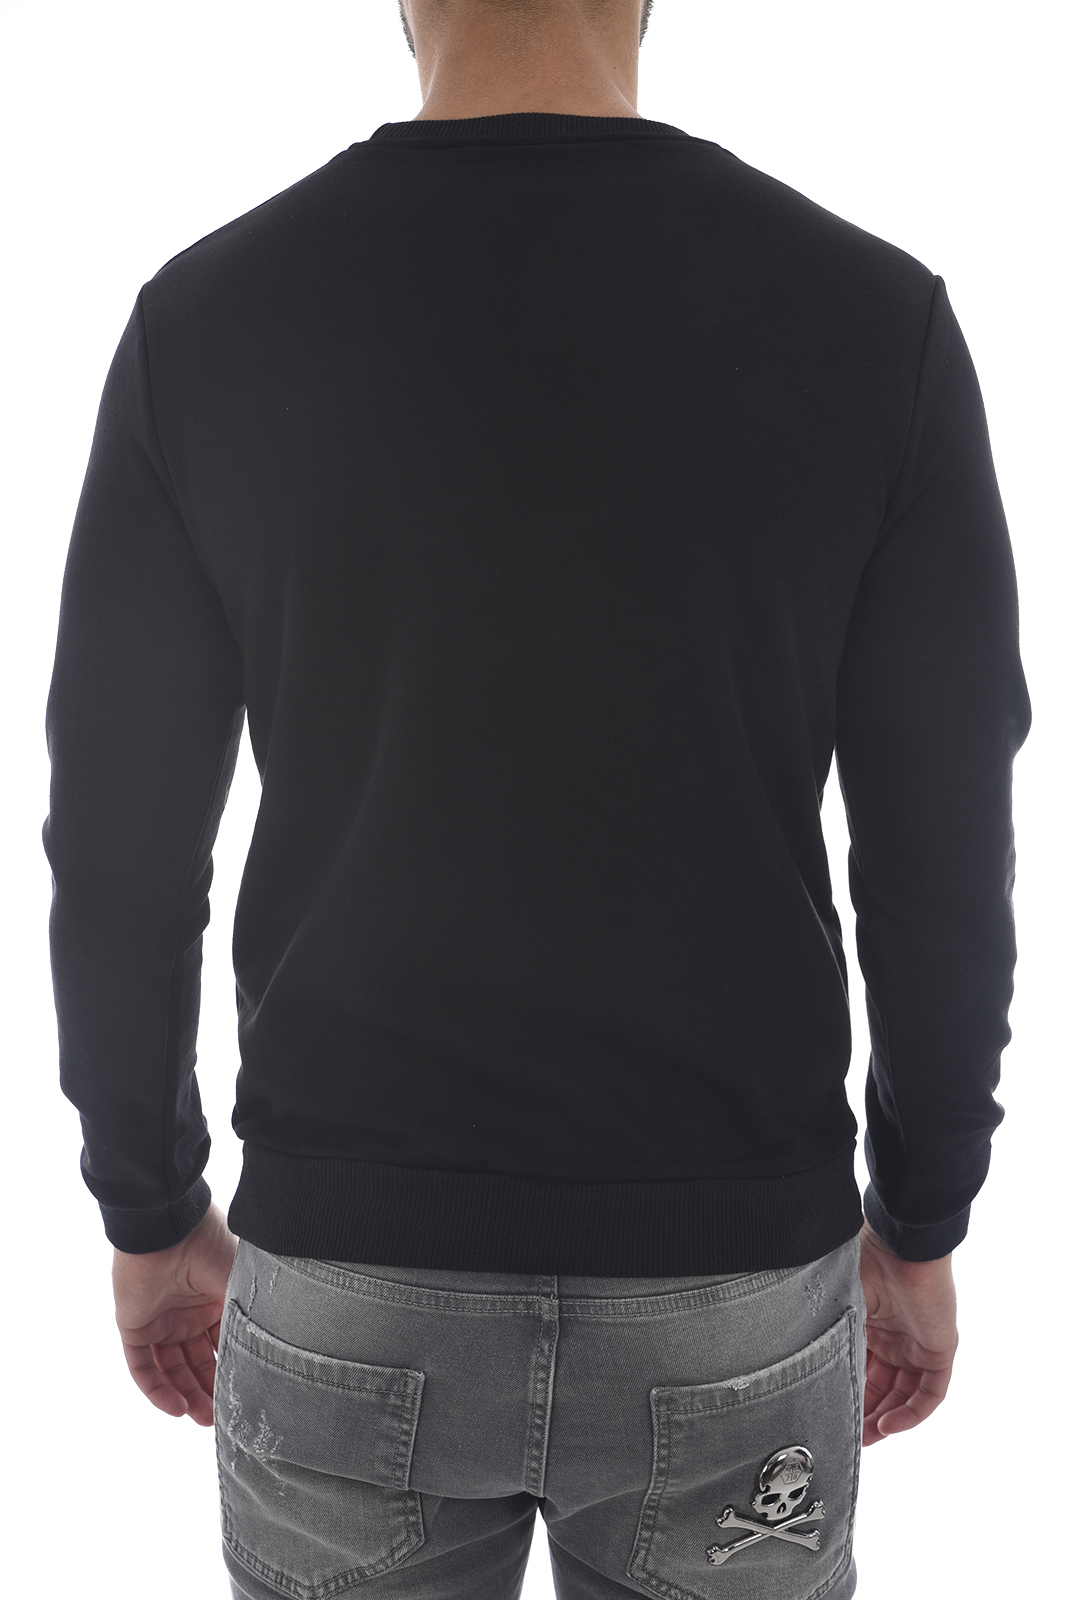 Sweatshirts  Goldenim paris 1005 NOIR